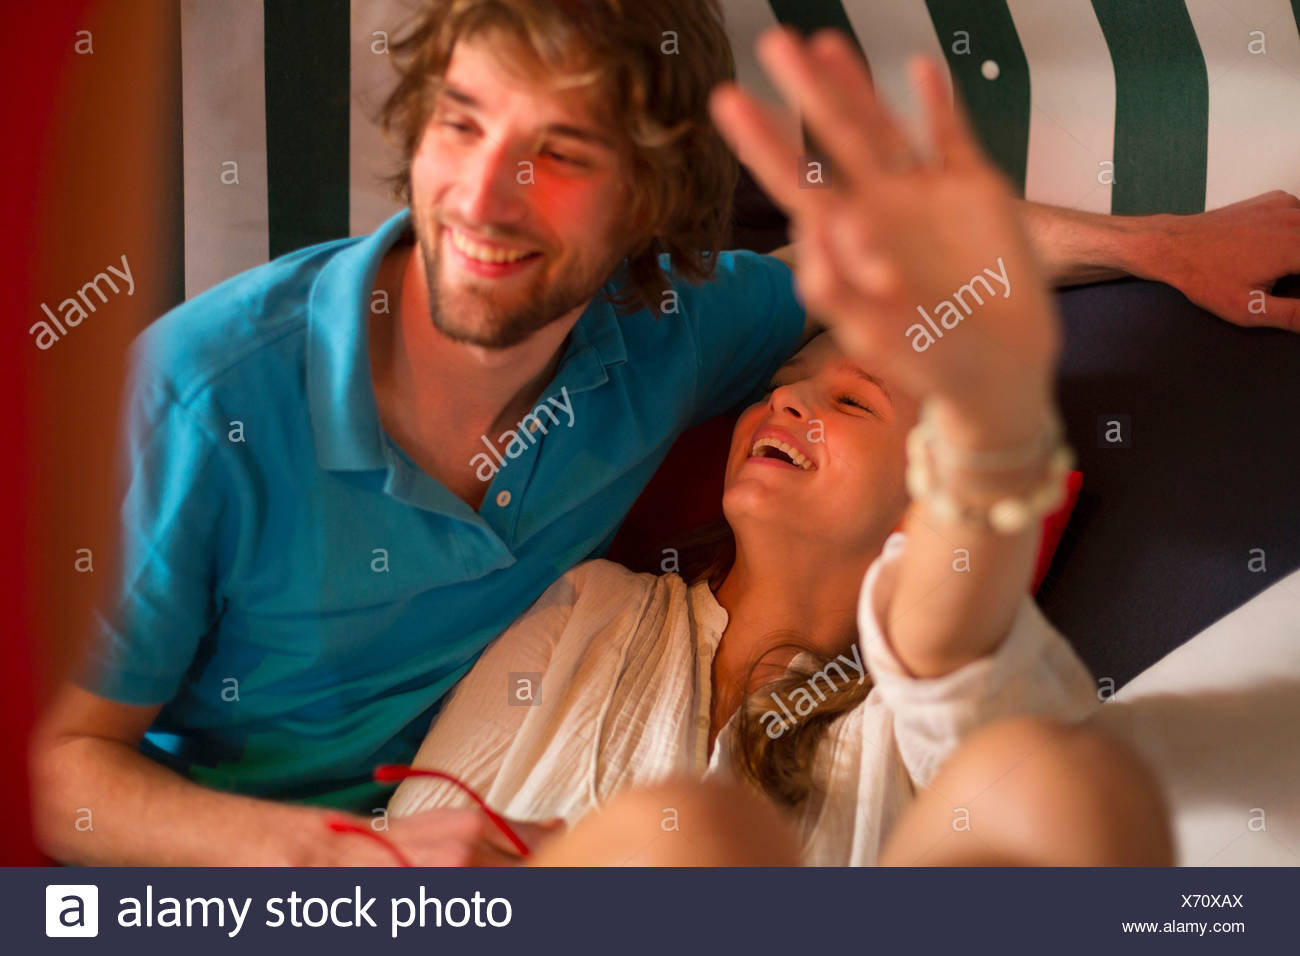 Carefree young couple lounging in bar - Stock Image